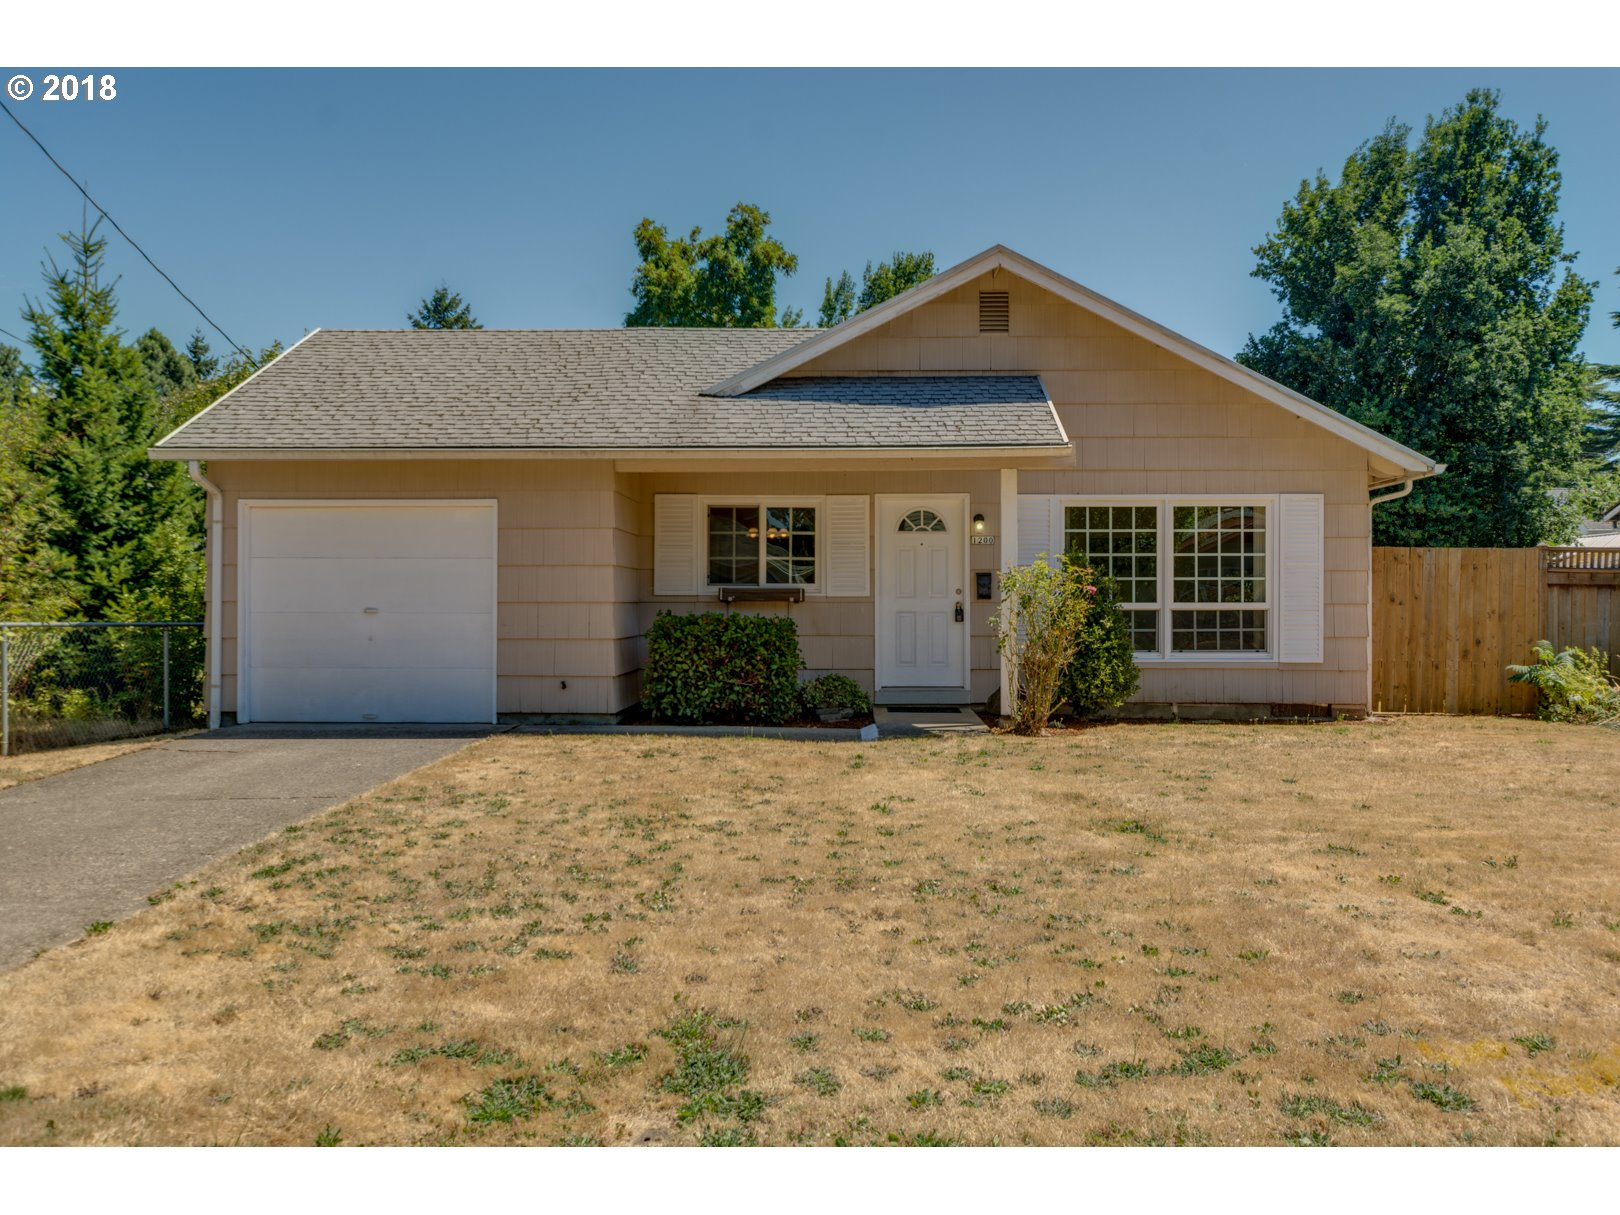 875 sq. ft 3 bedrooms 1 bathrooms  House For Sale,Portland, OR